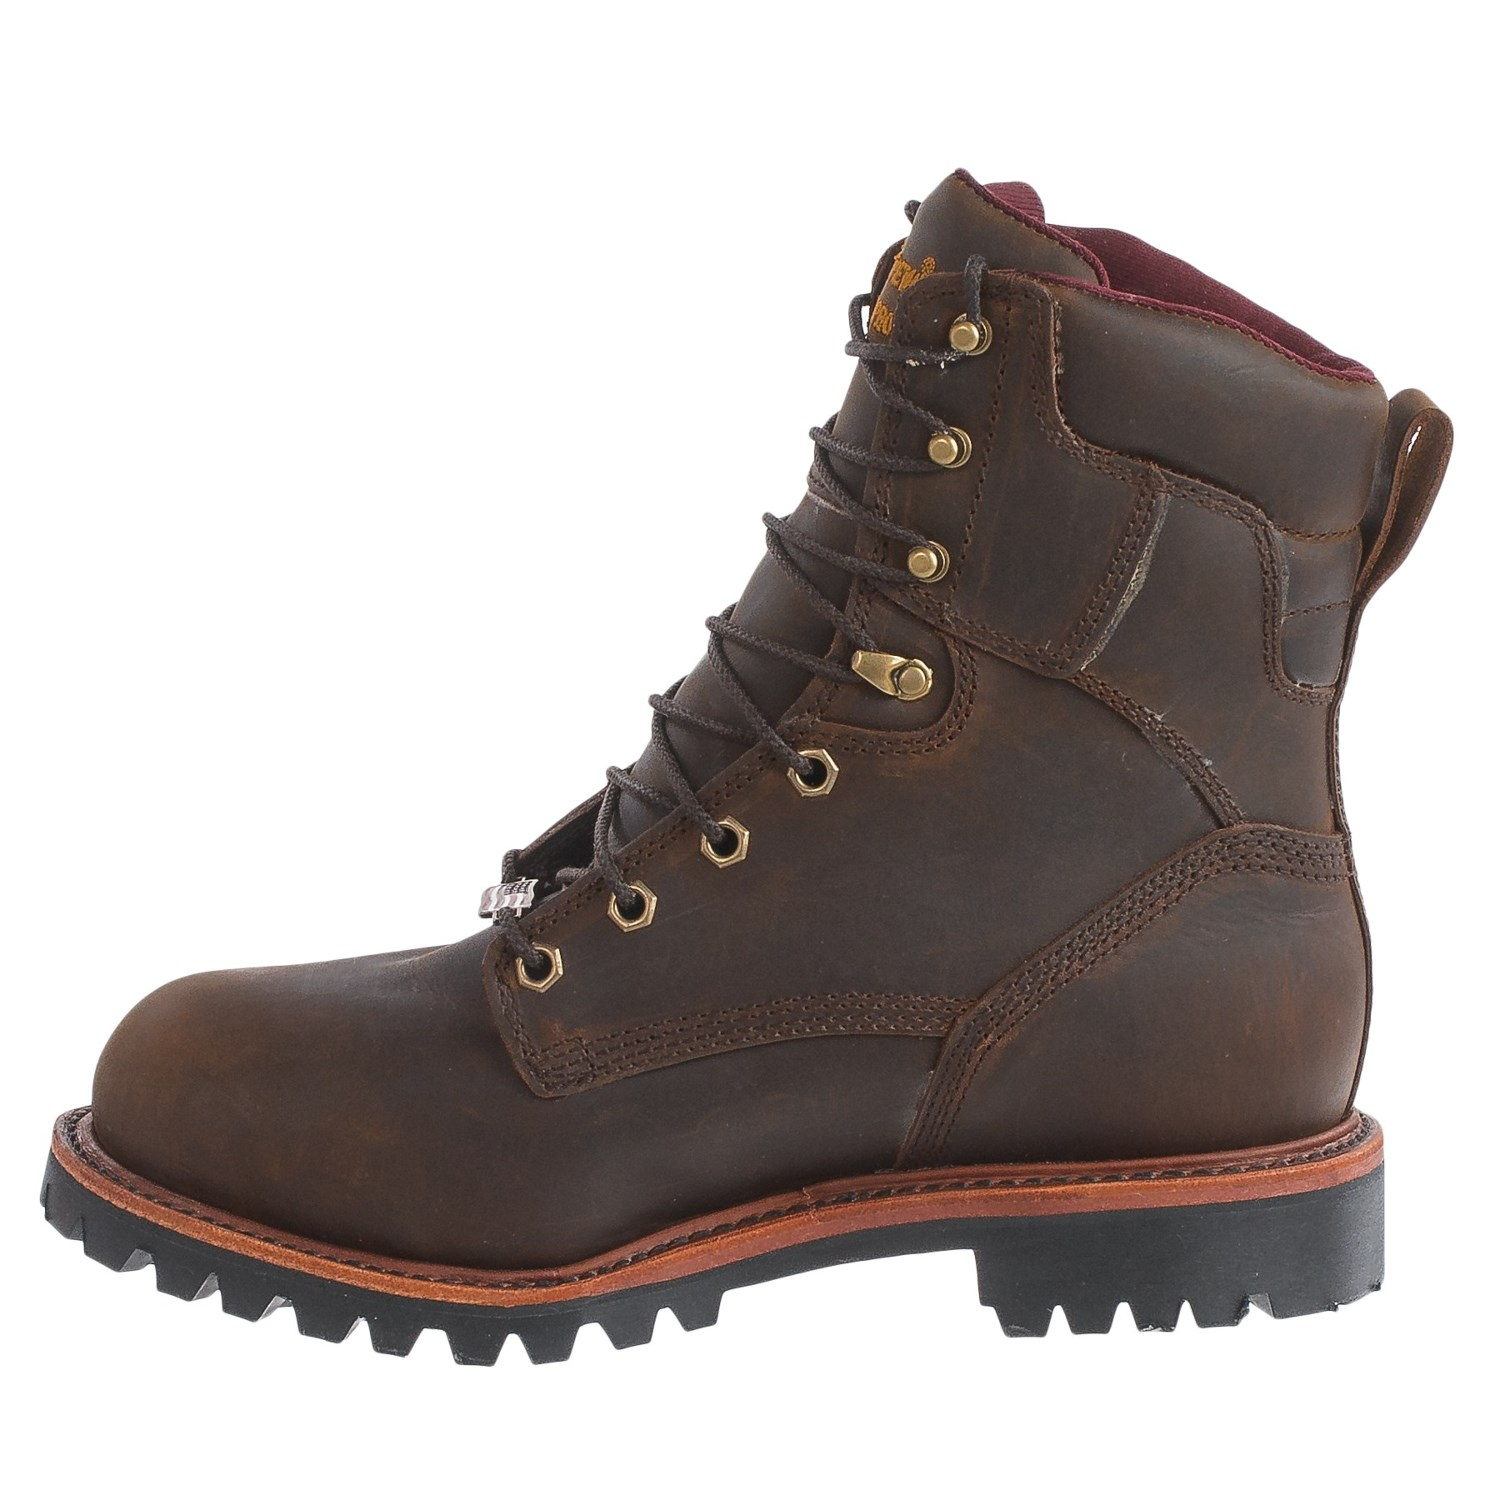 Chippewa Bay Crazy Horse Steel Toe Work Boots (For Men) - Save 40%